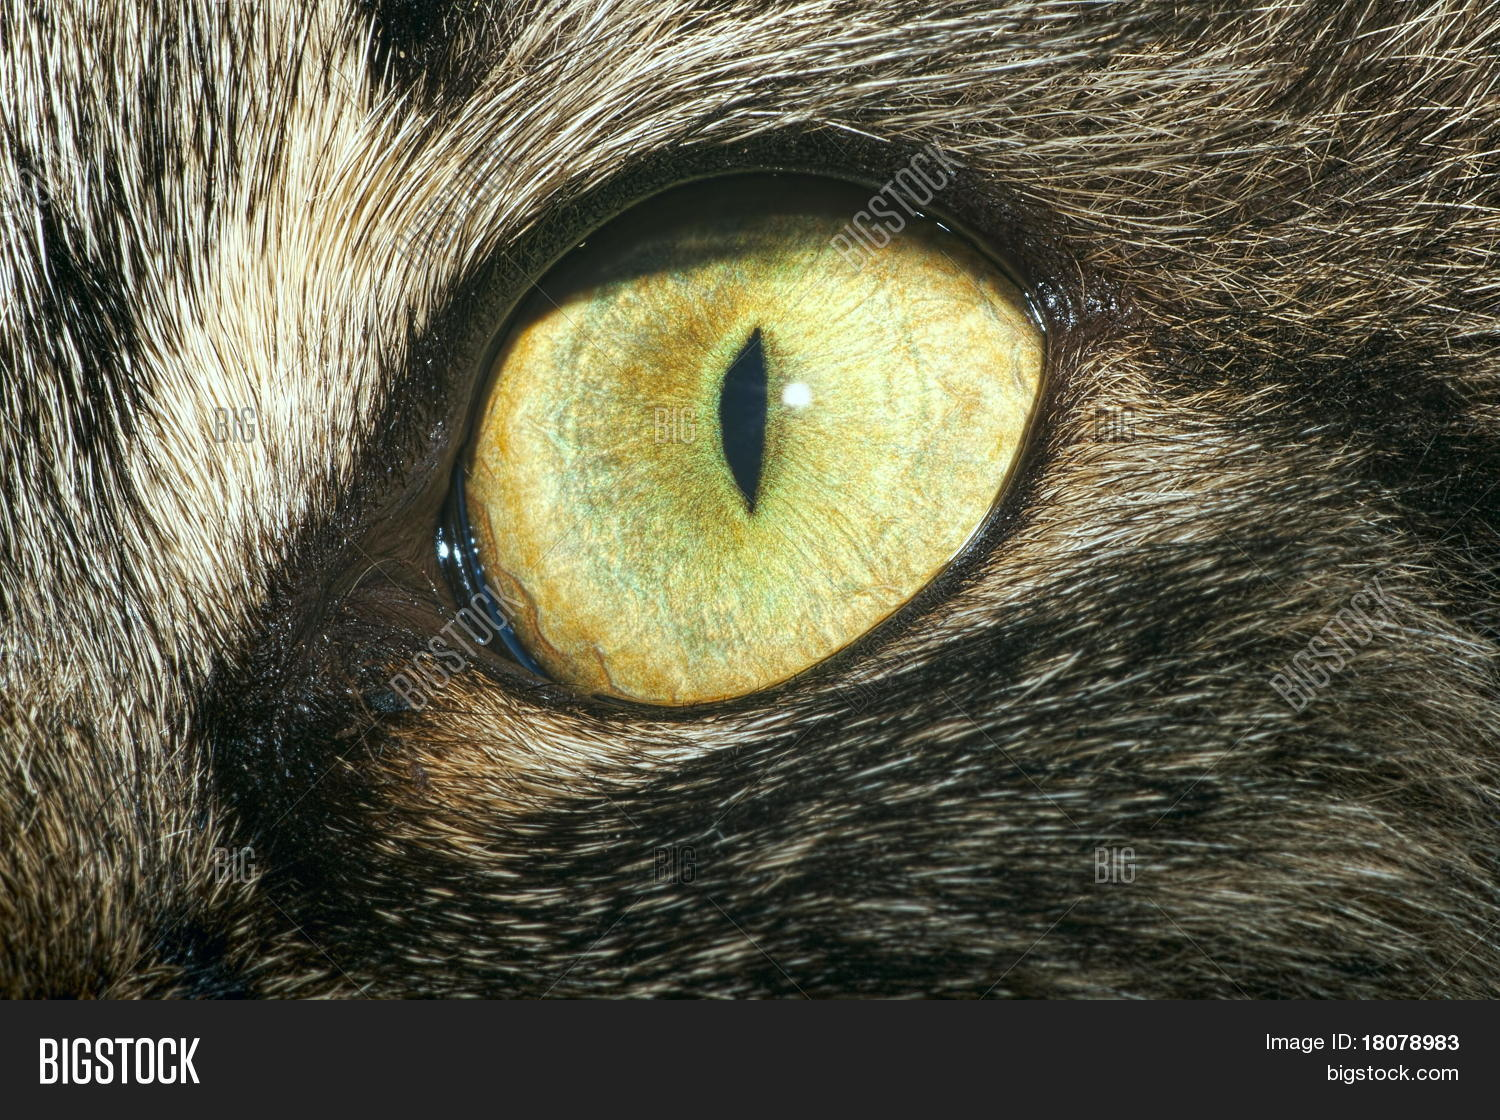 Extreme Close Cats Image Photo Free Trial Bigstock